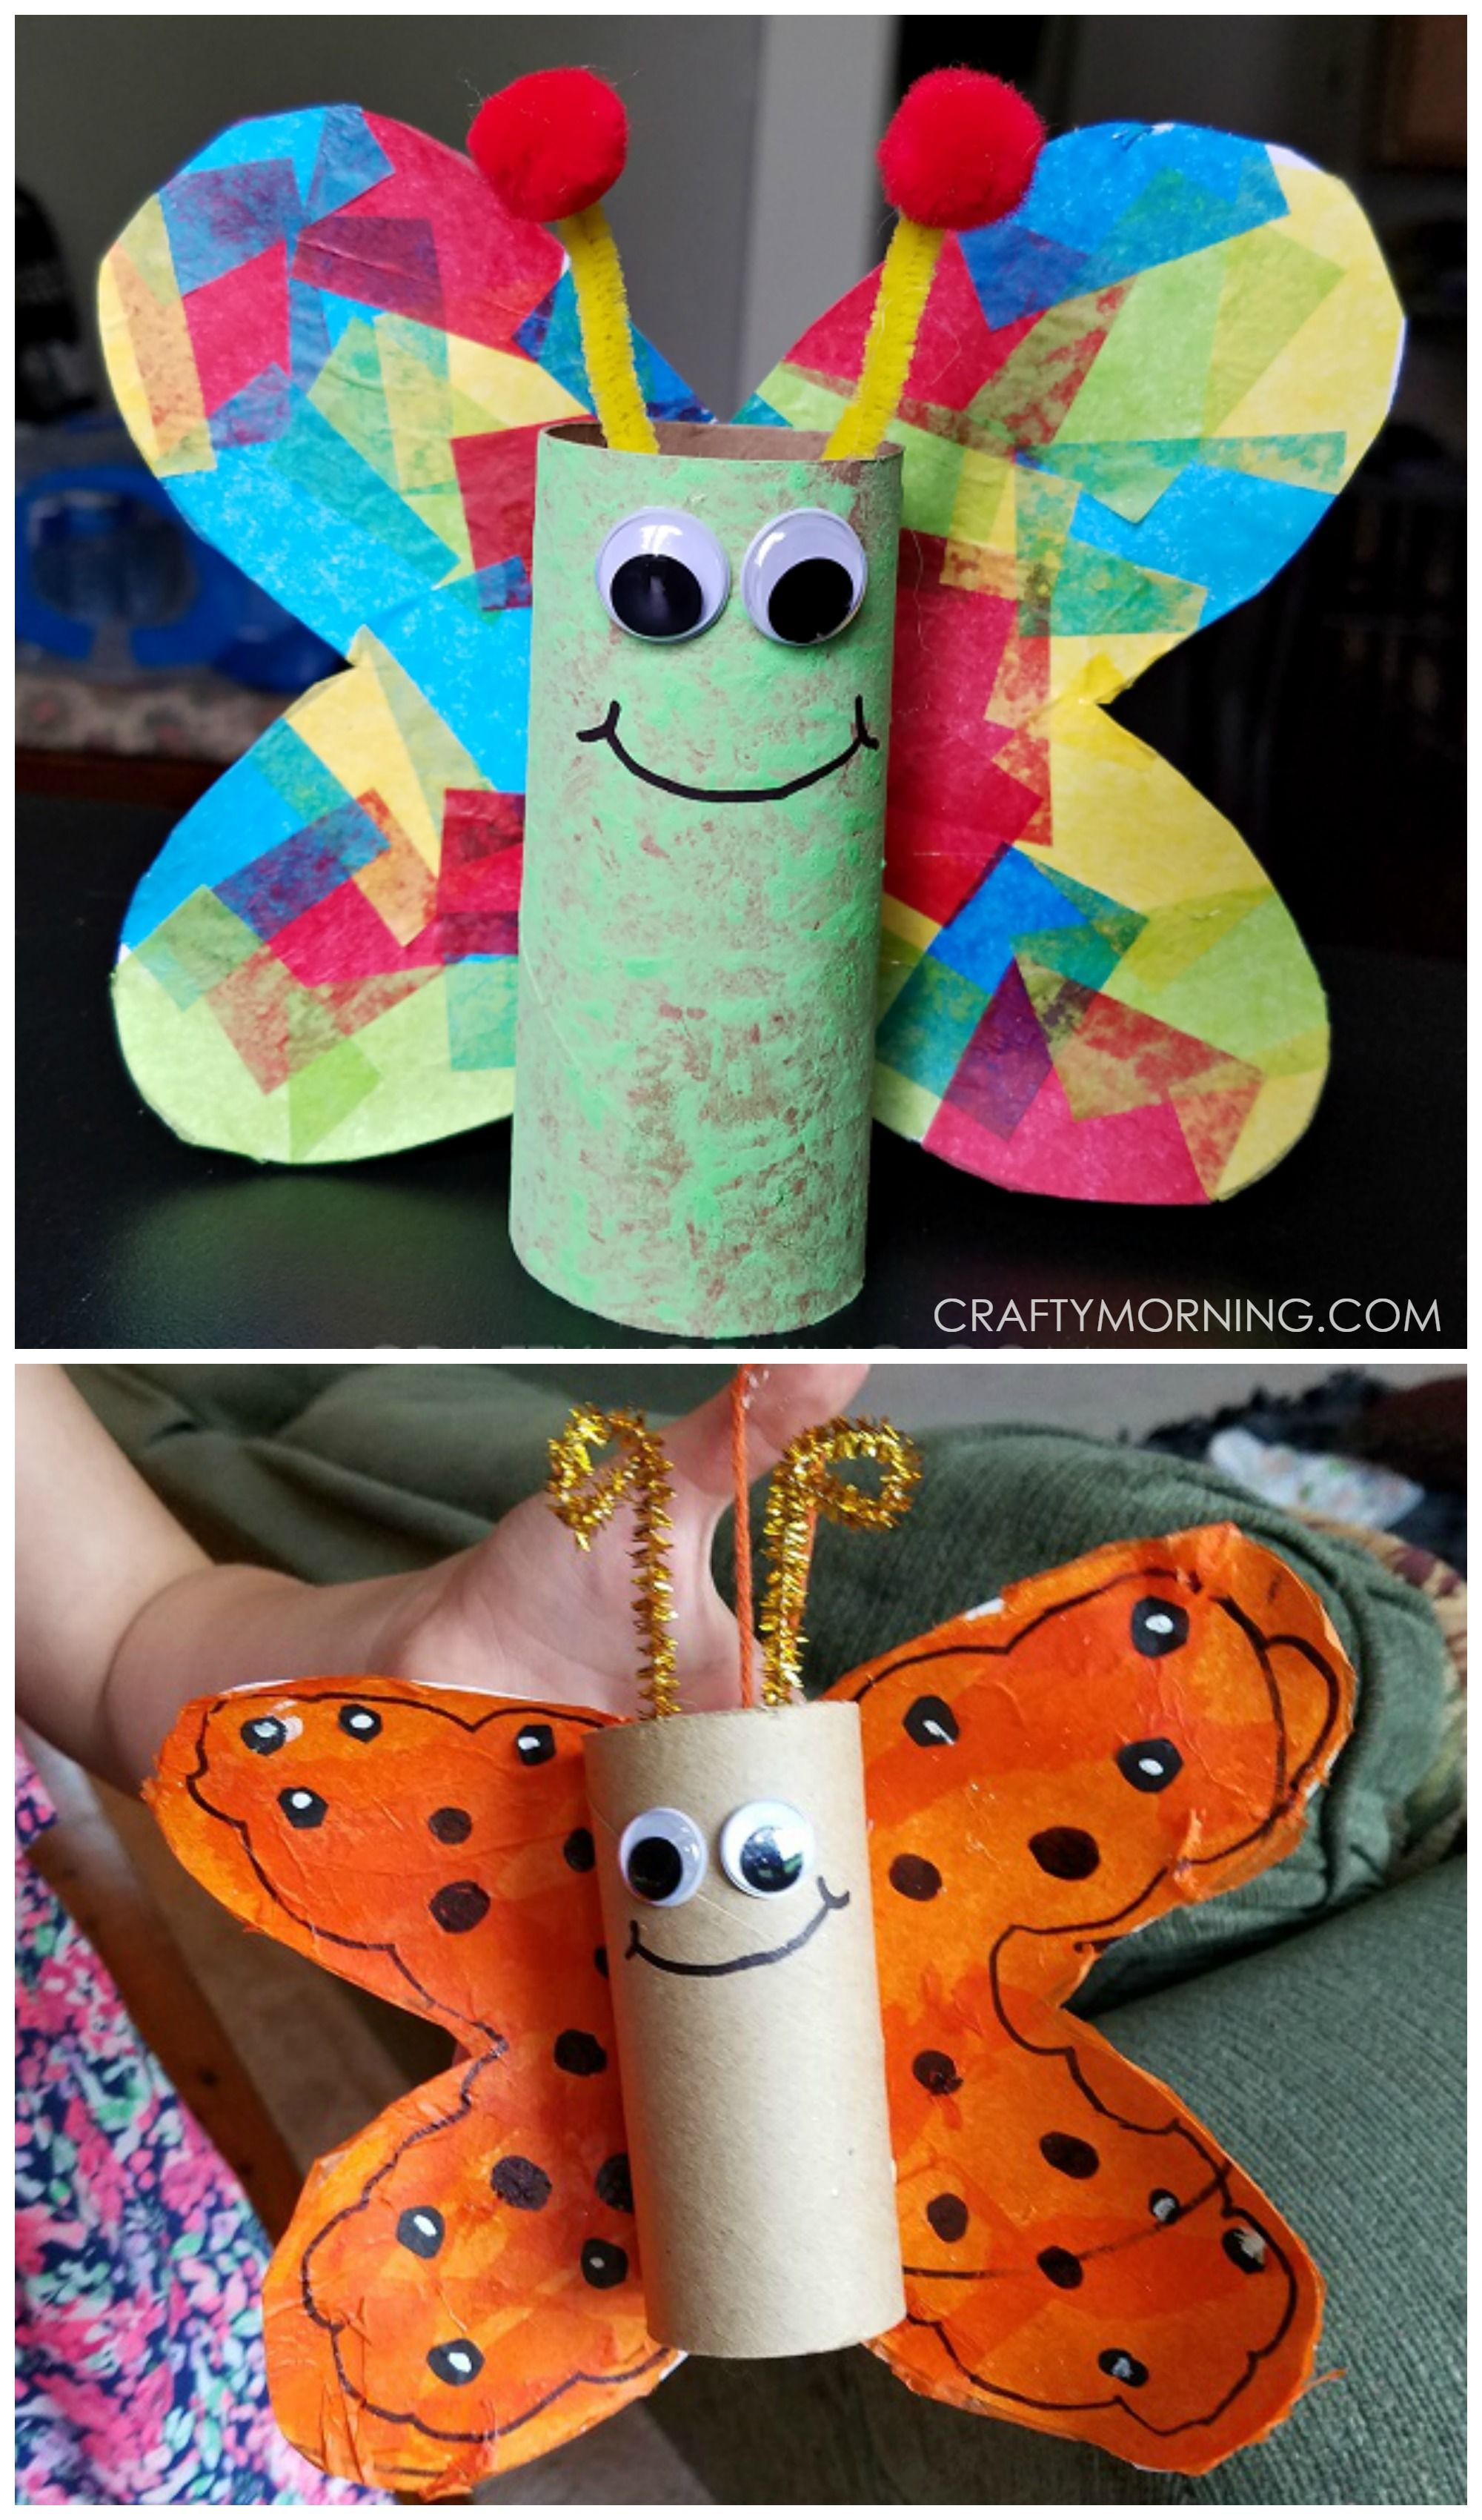 cardboard tube butterfly craft for kids to make perfect